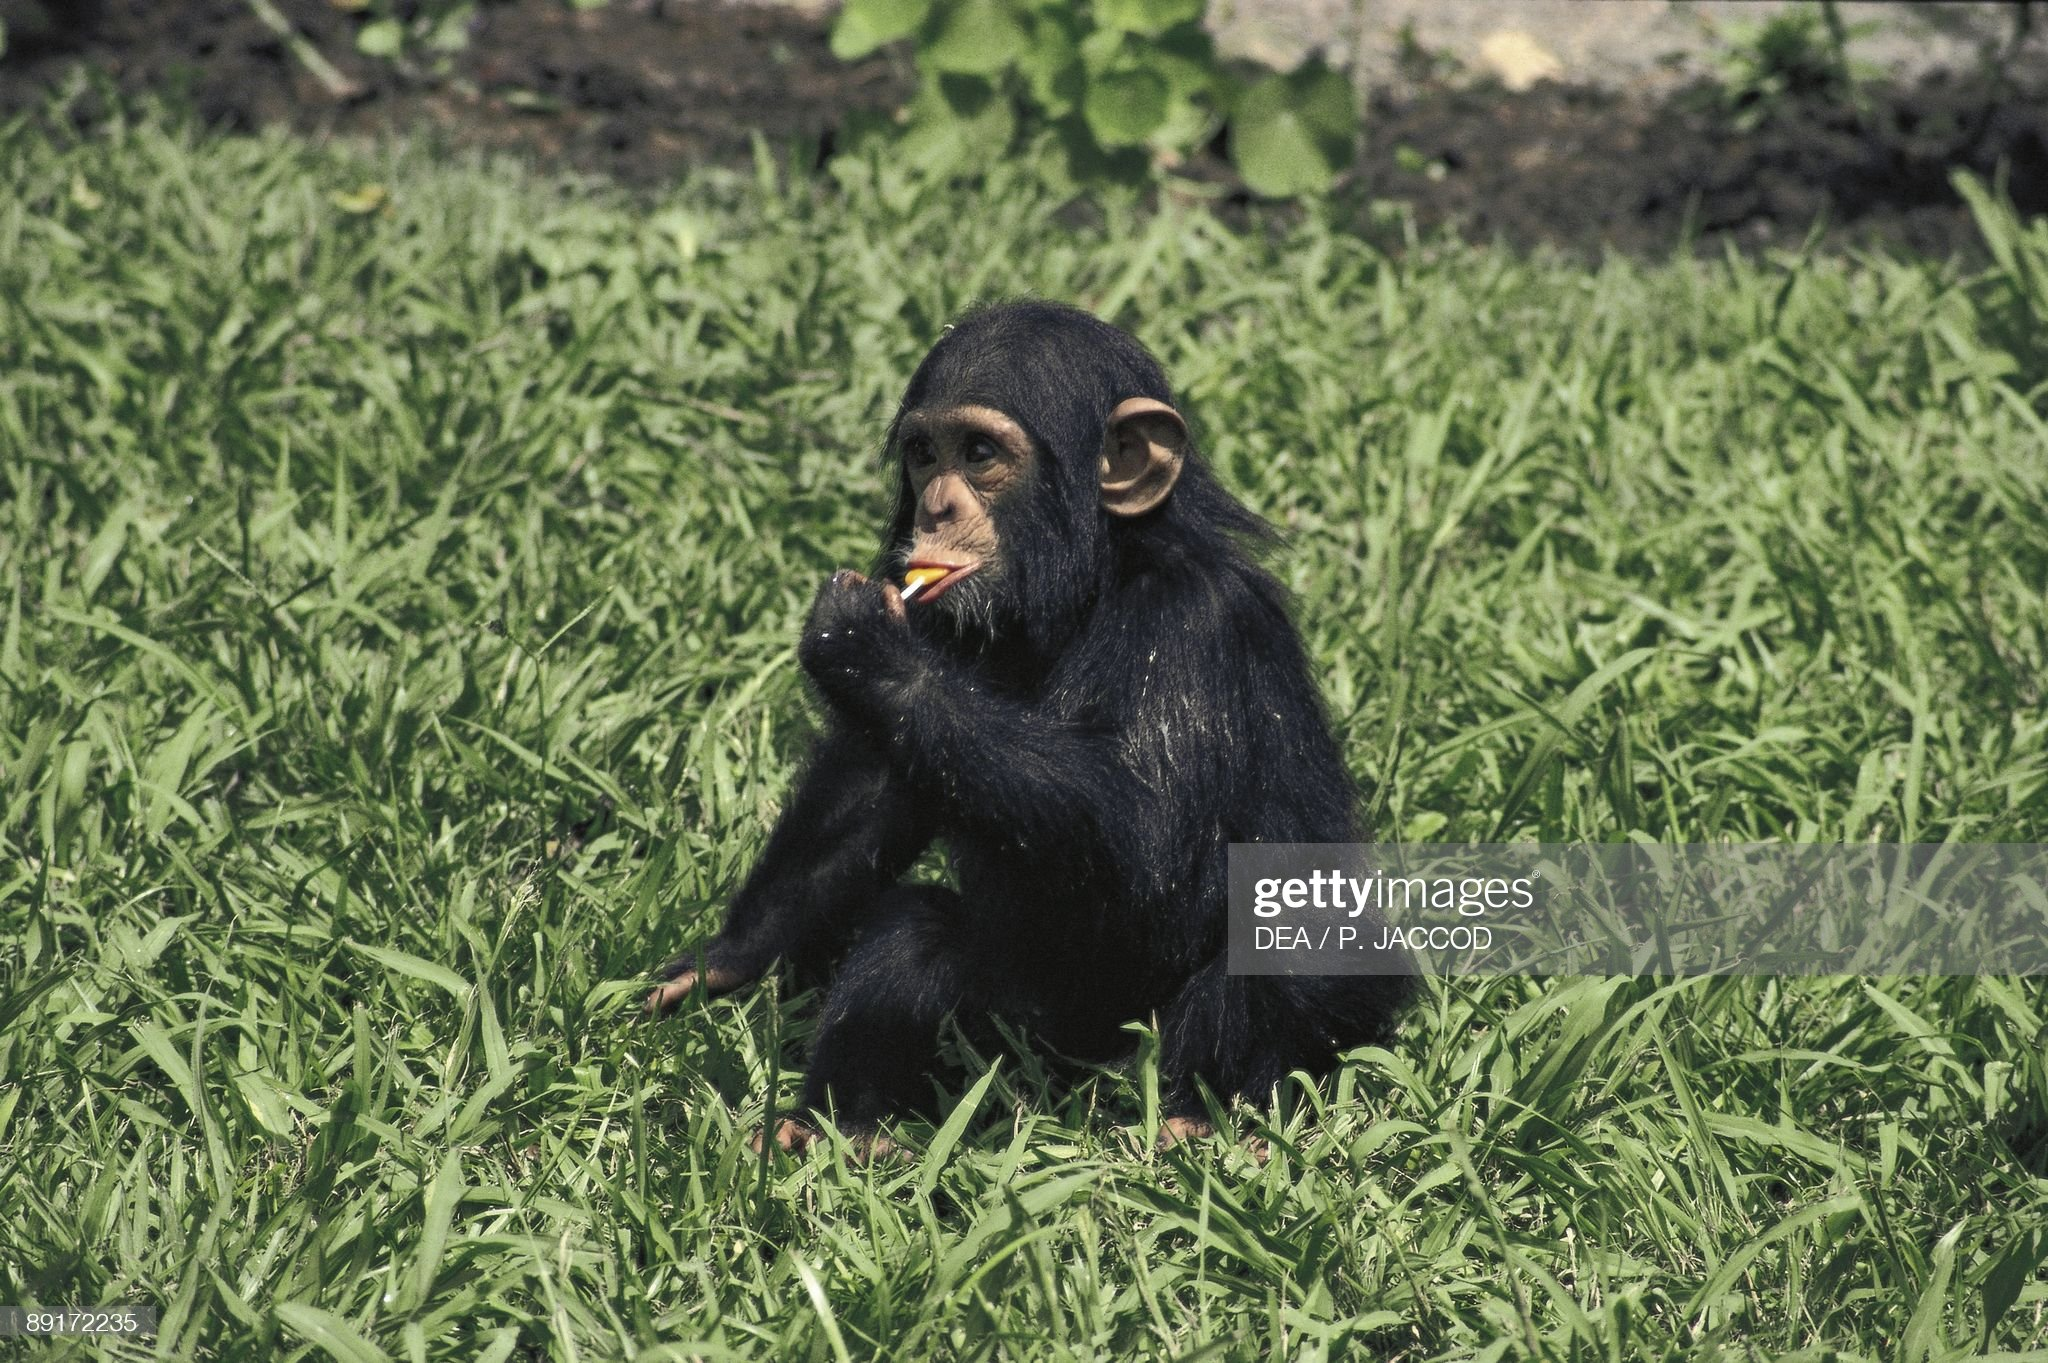 Dwarf chimpanzee (Pan paniscus) eating leaves : News Photo